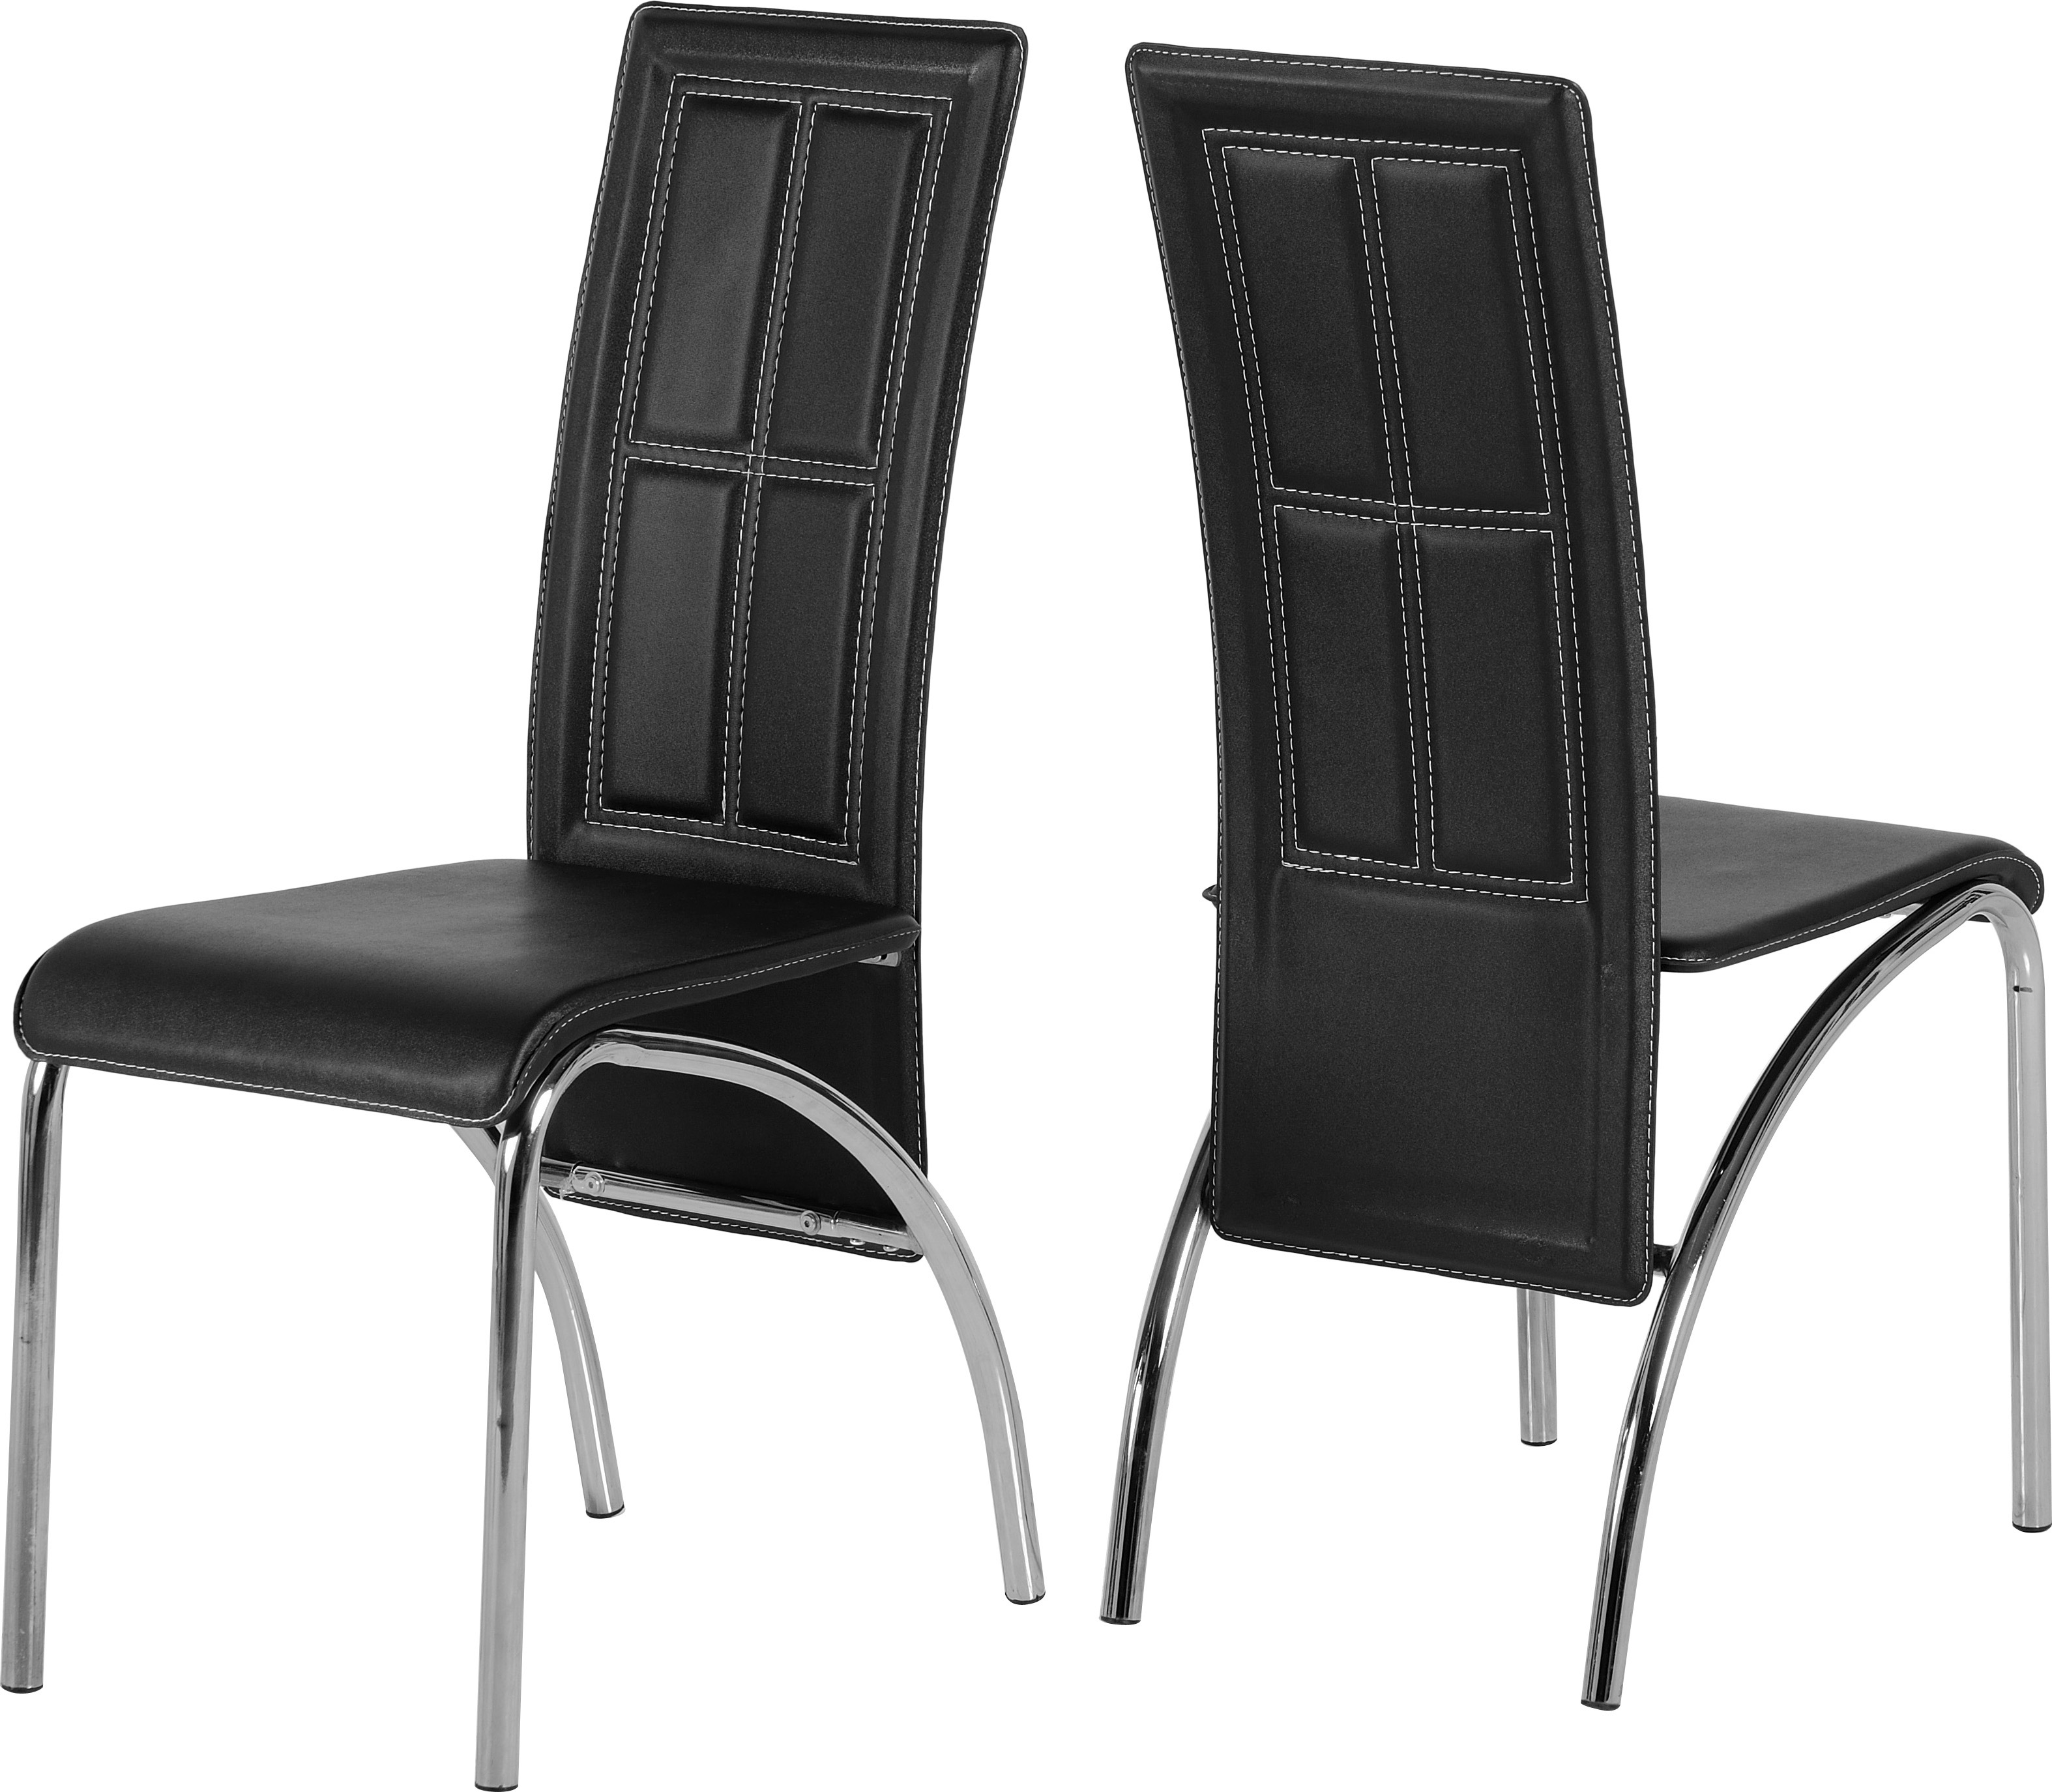 Image of A3 Chair in Black & Chrome set of 2